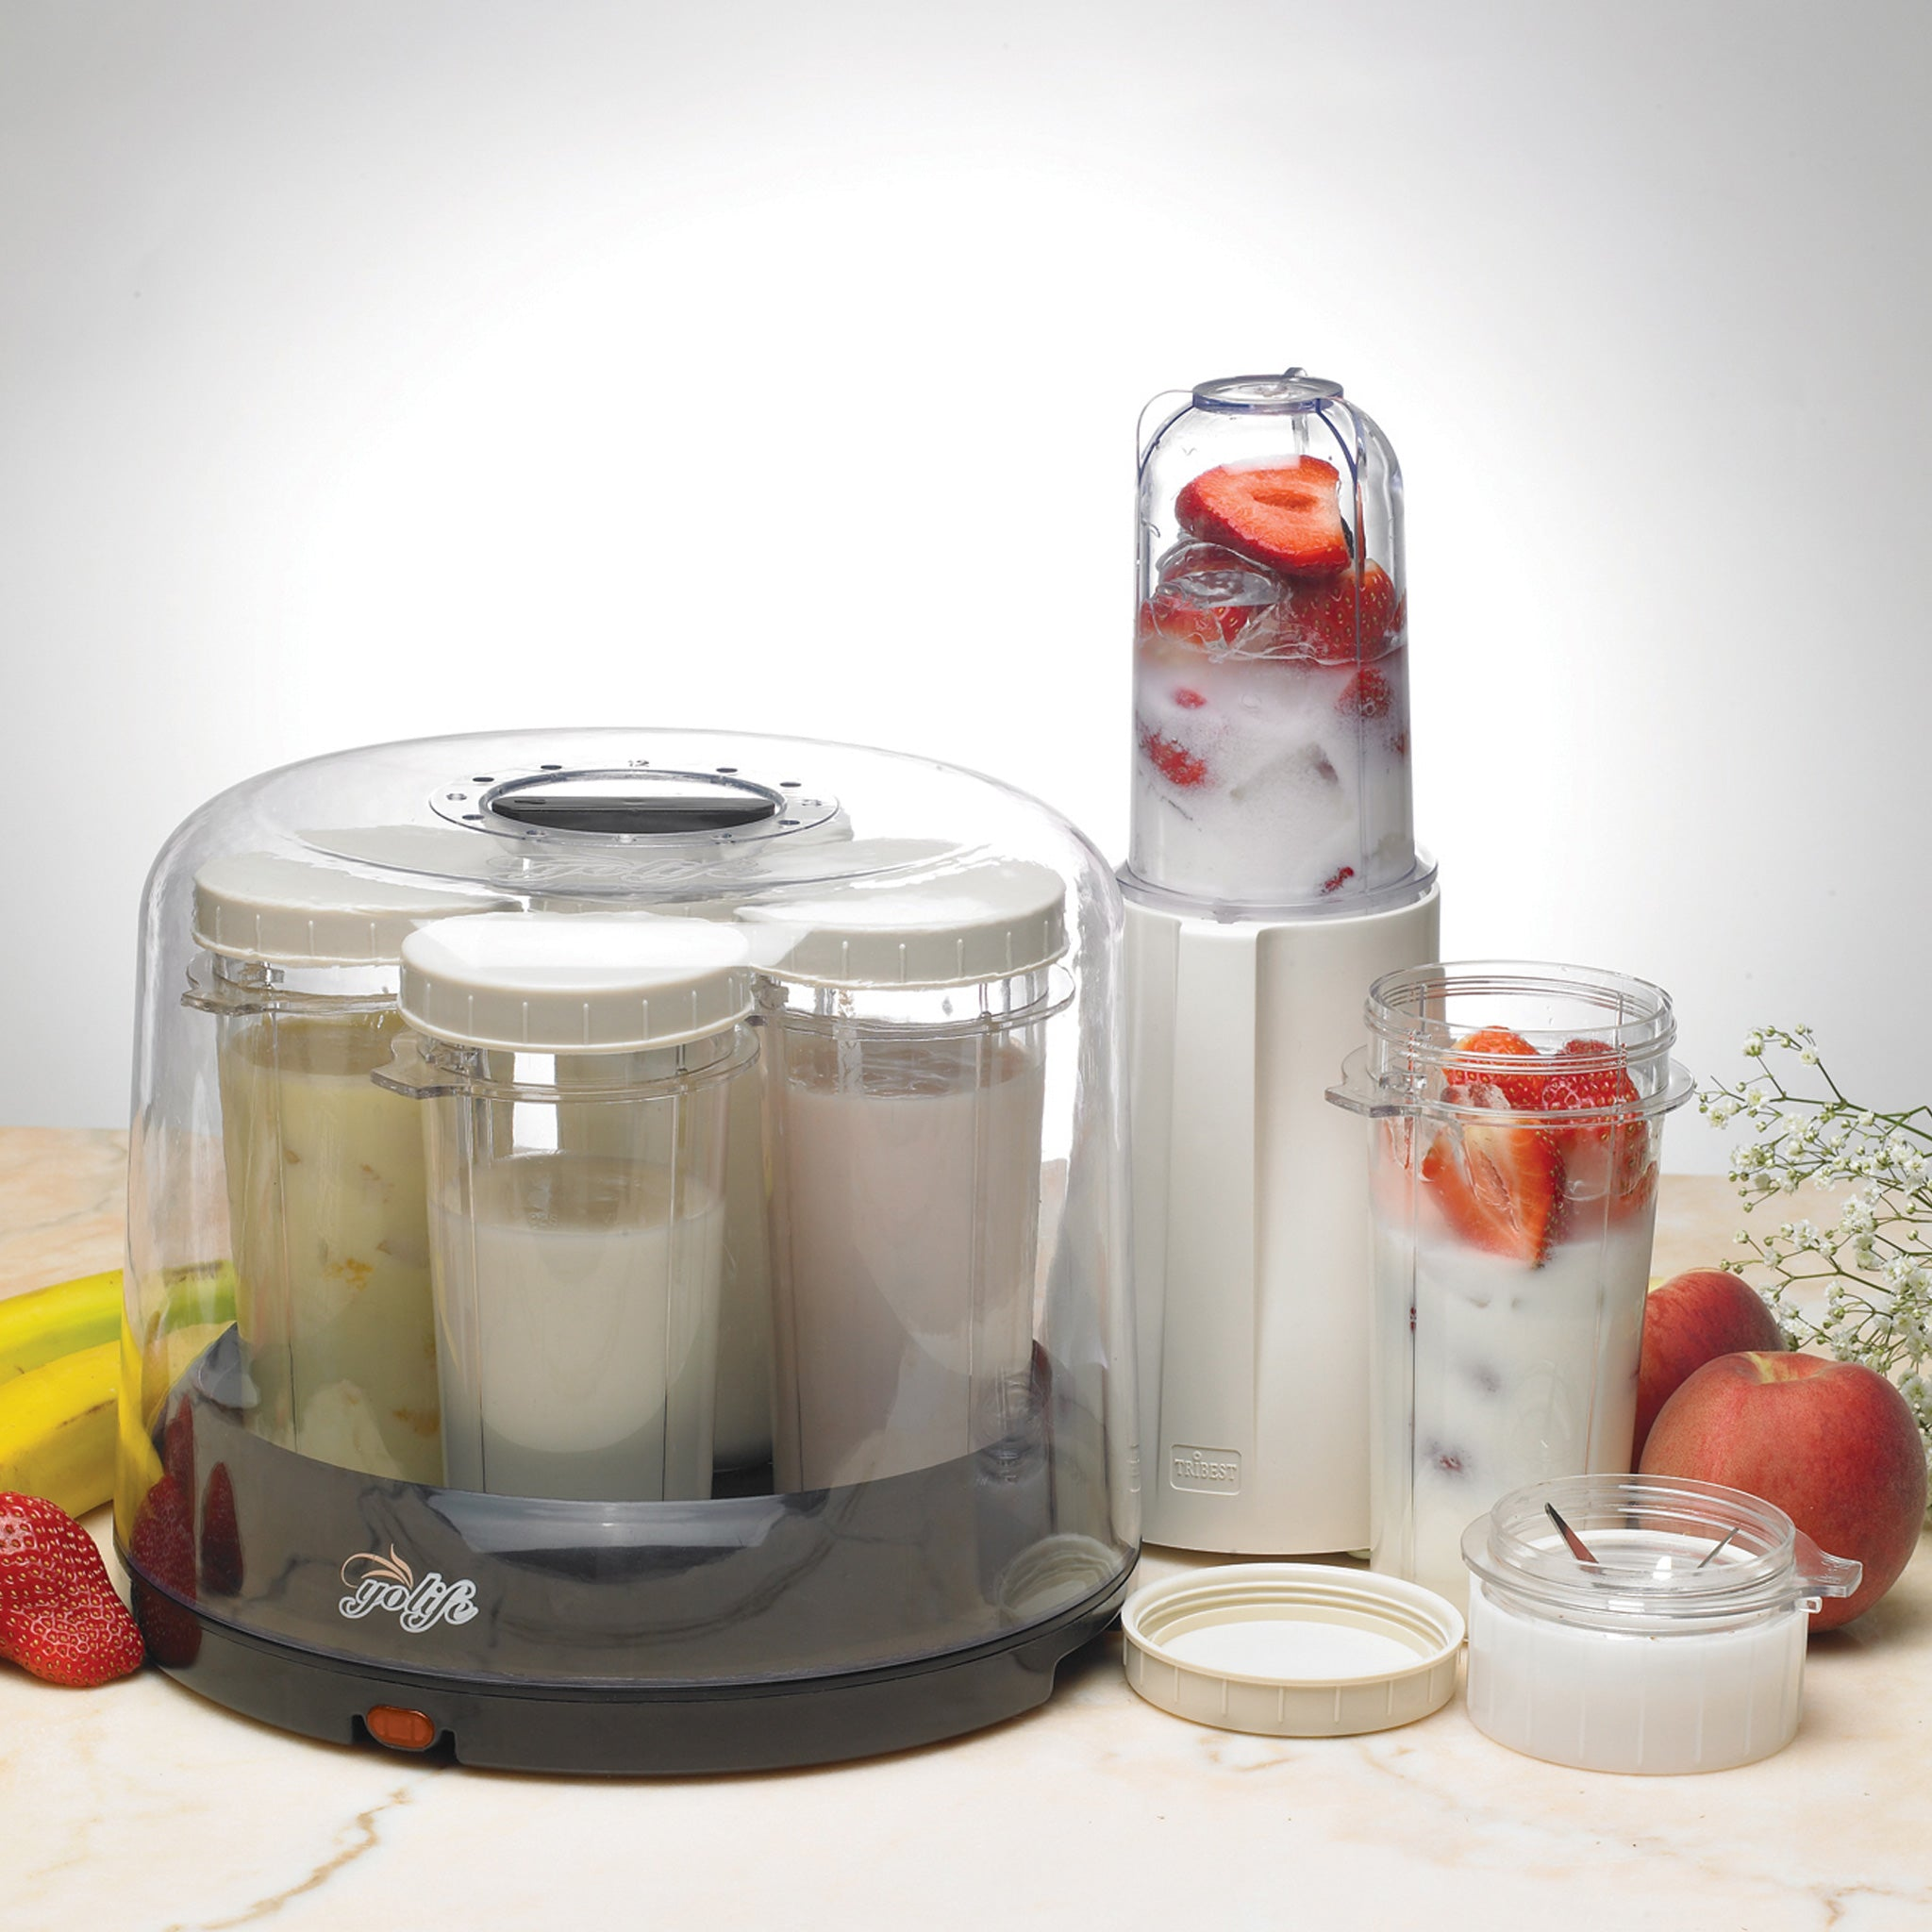 Yolife Yogurt Maker YL-210-A - Make Yogurt Inside Personal Blender Containers - Tribest